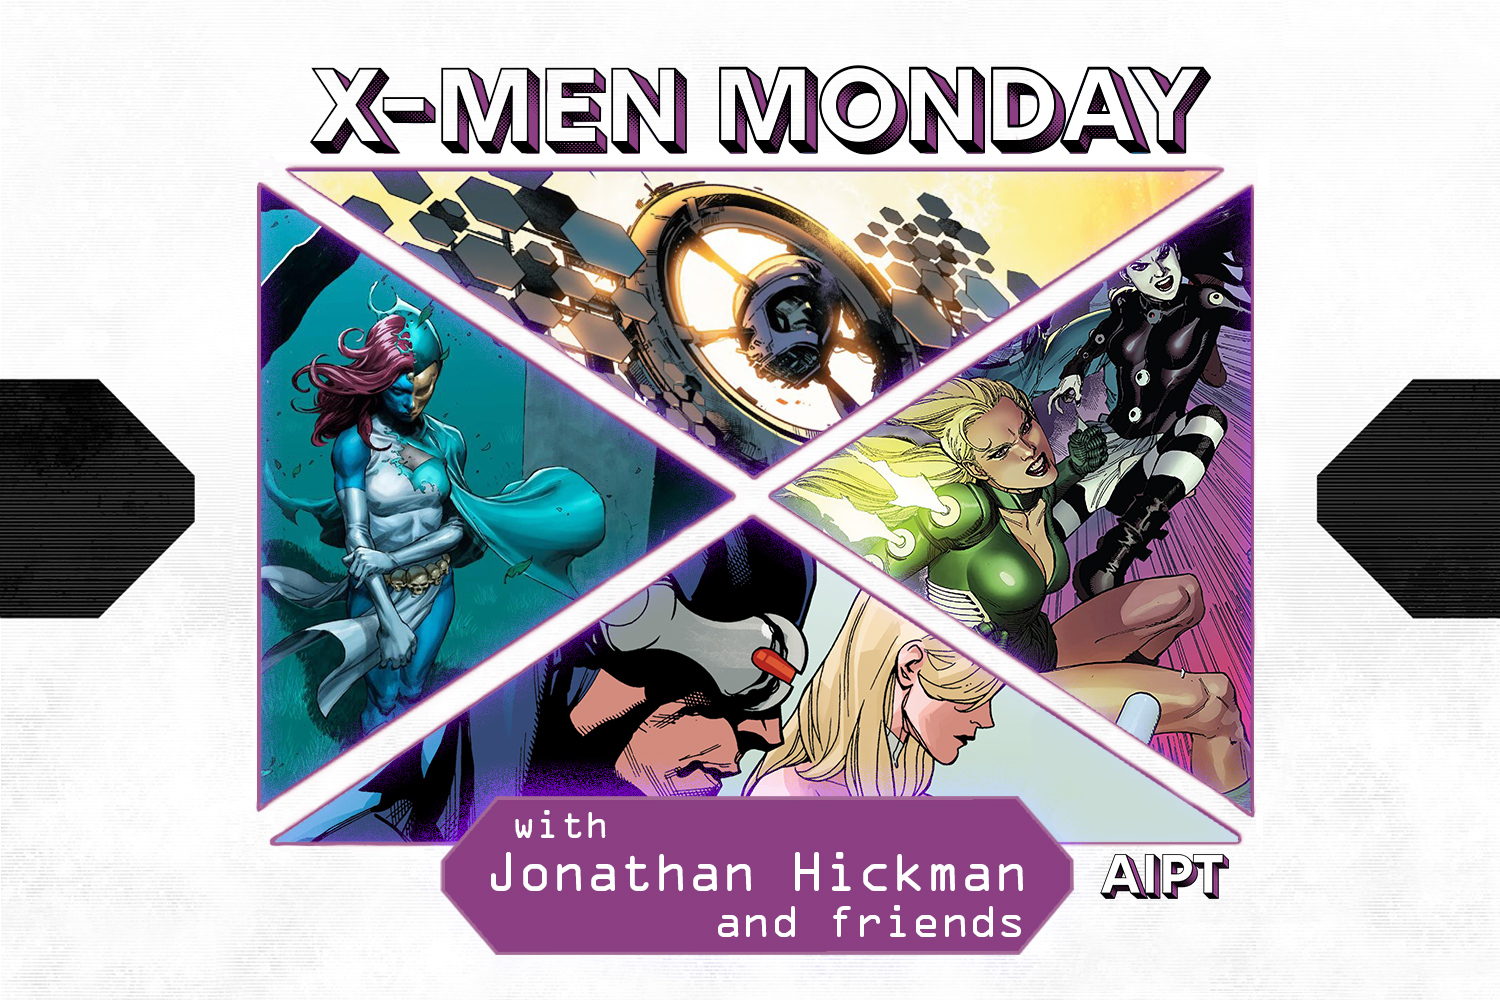 X-Men Monday #125 – Jonathan Hickman Reflects on the 'X-Men Experiment' and Teases the 'Amazing' Stories to Come